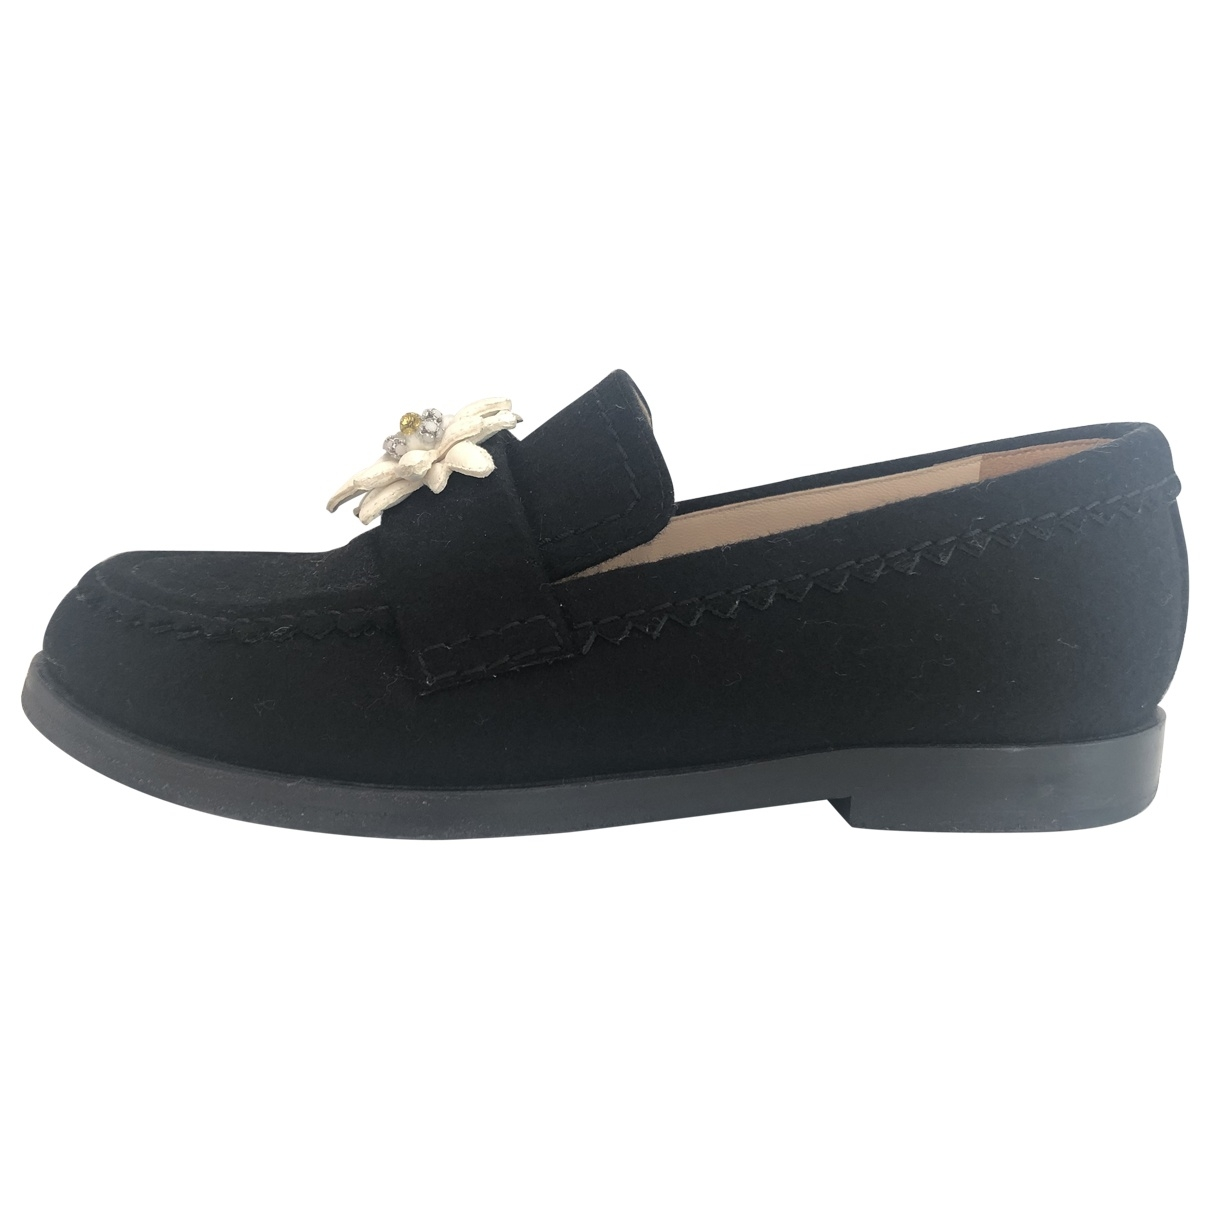 Chanel \N Black Suede Flats for Women 3.5 UK